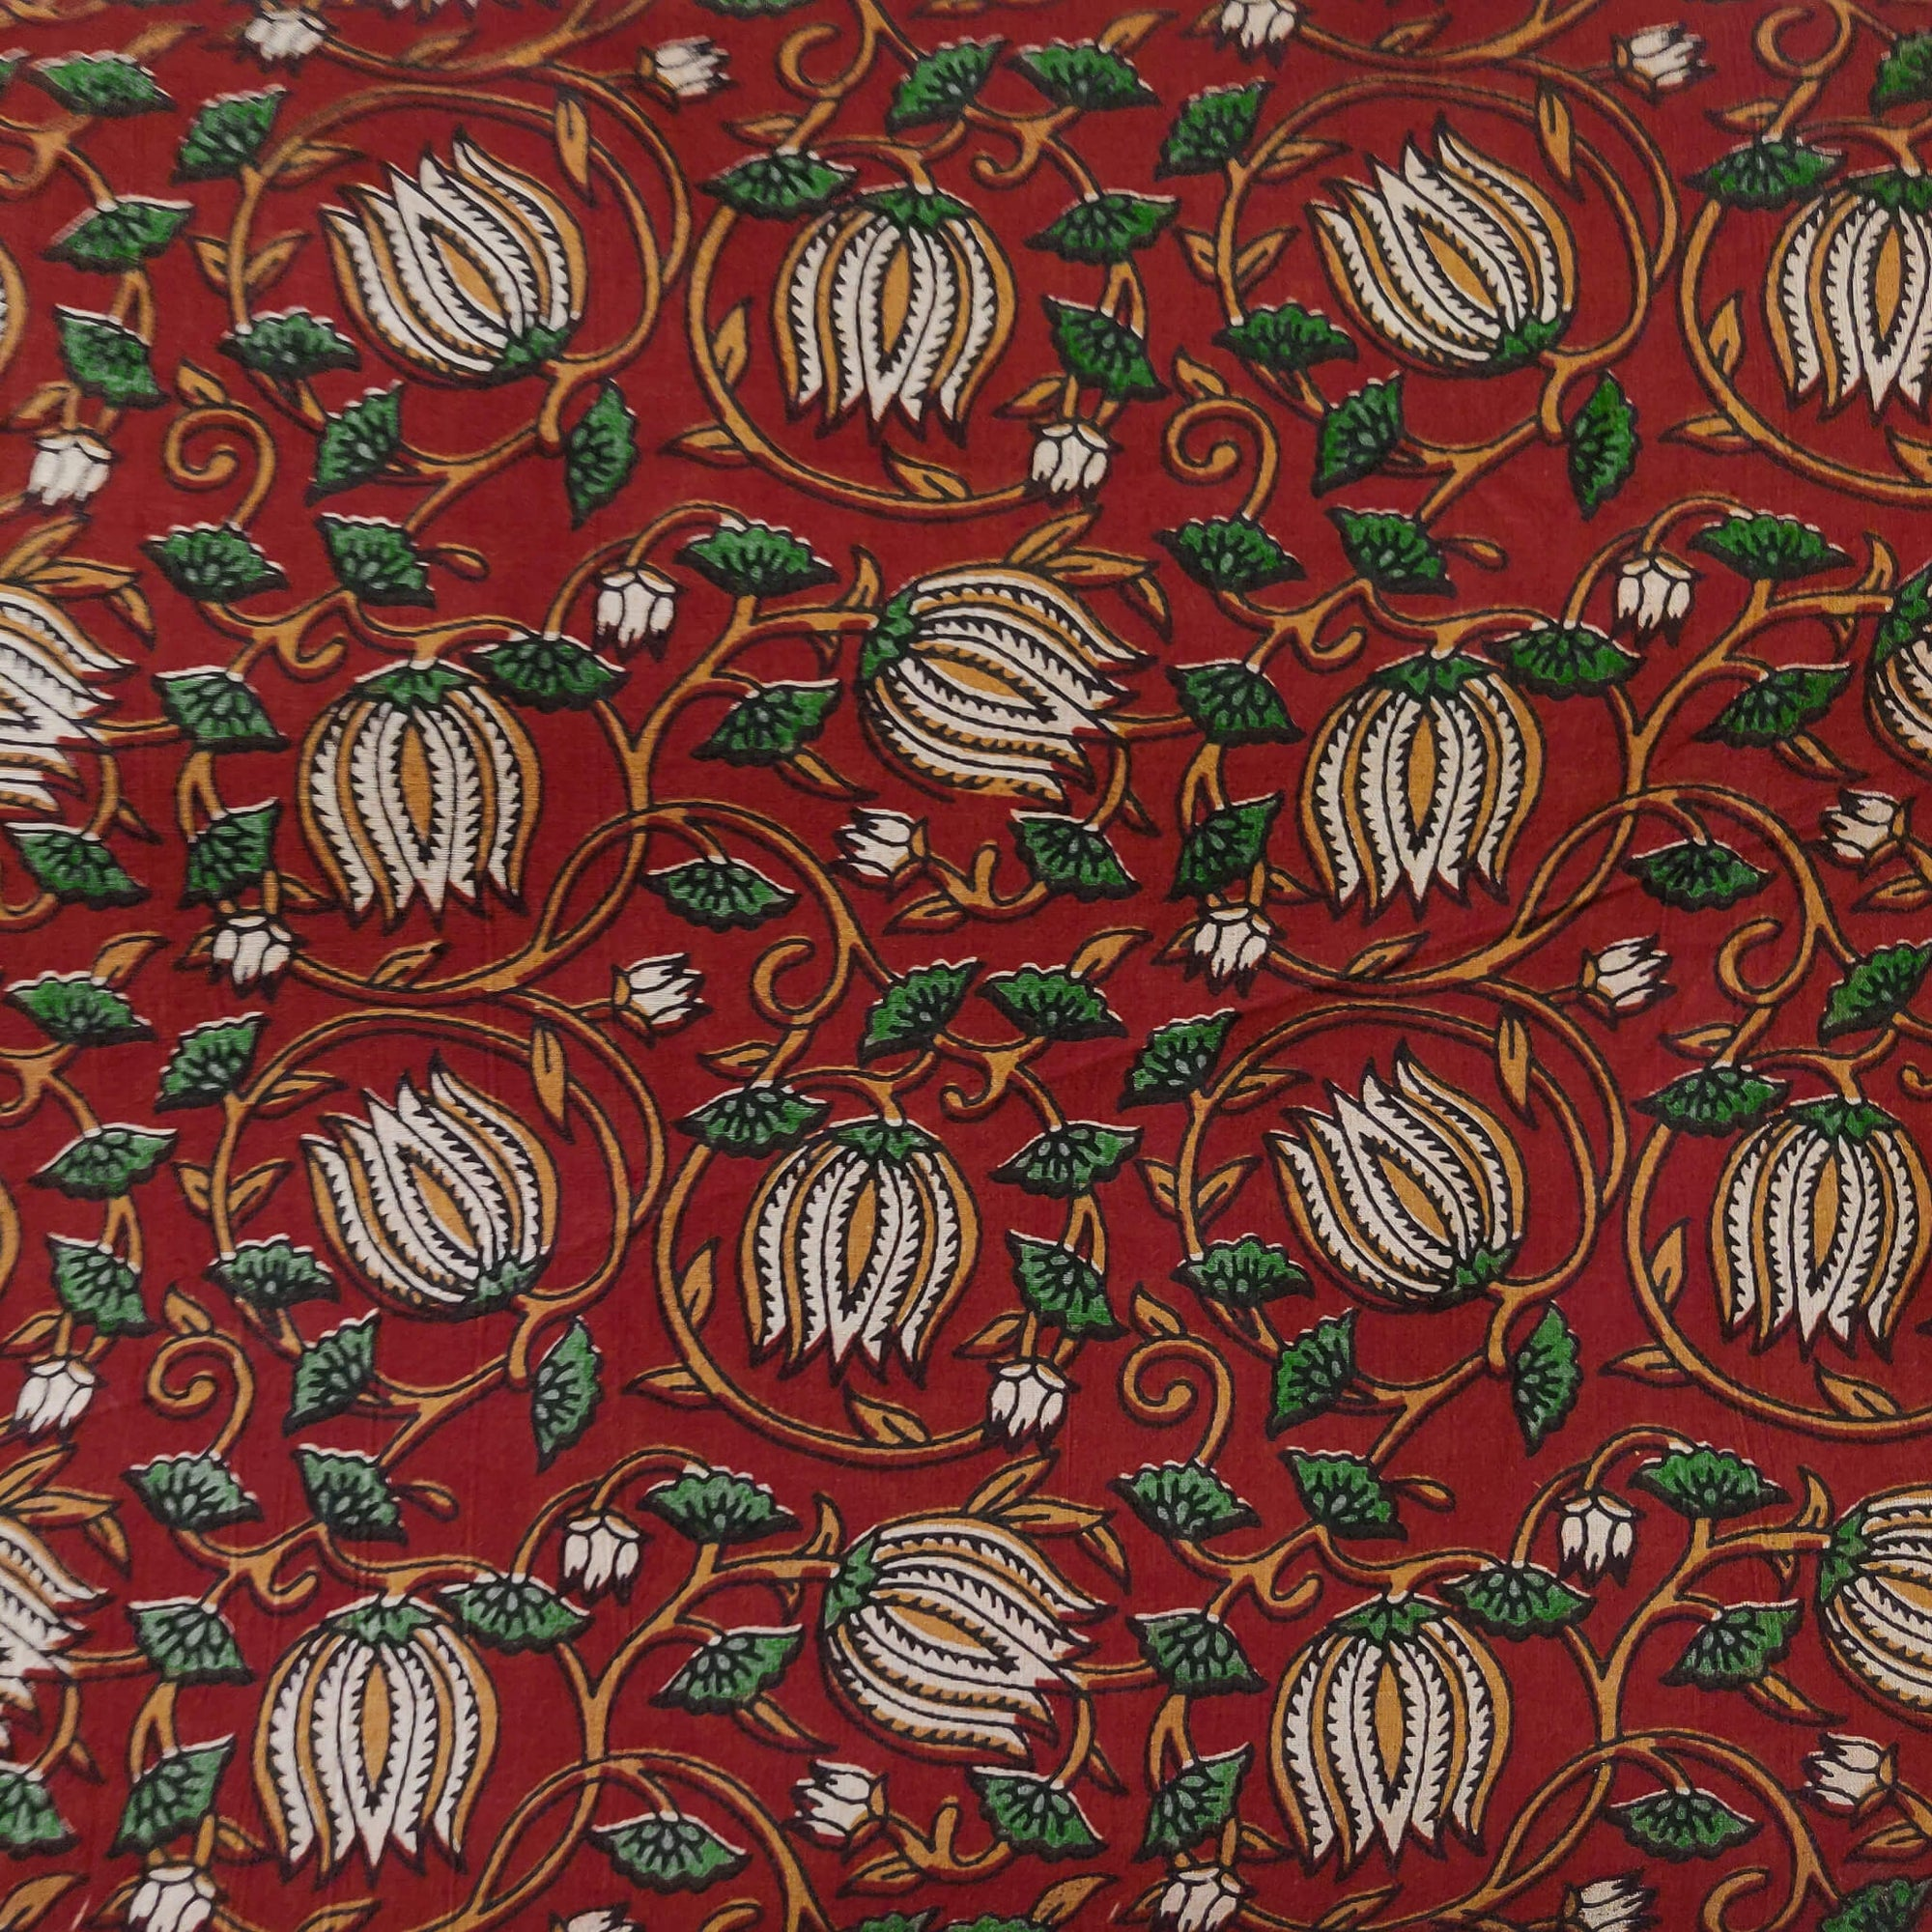 Pure Cotton Dabu Maroon With Cream Lotus Jaal Hand Block Print Fabric